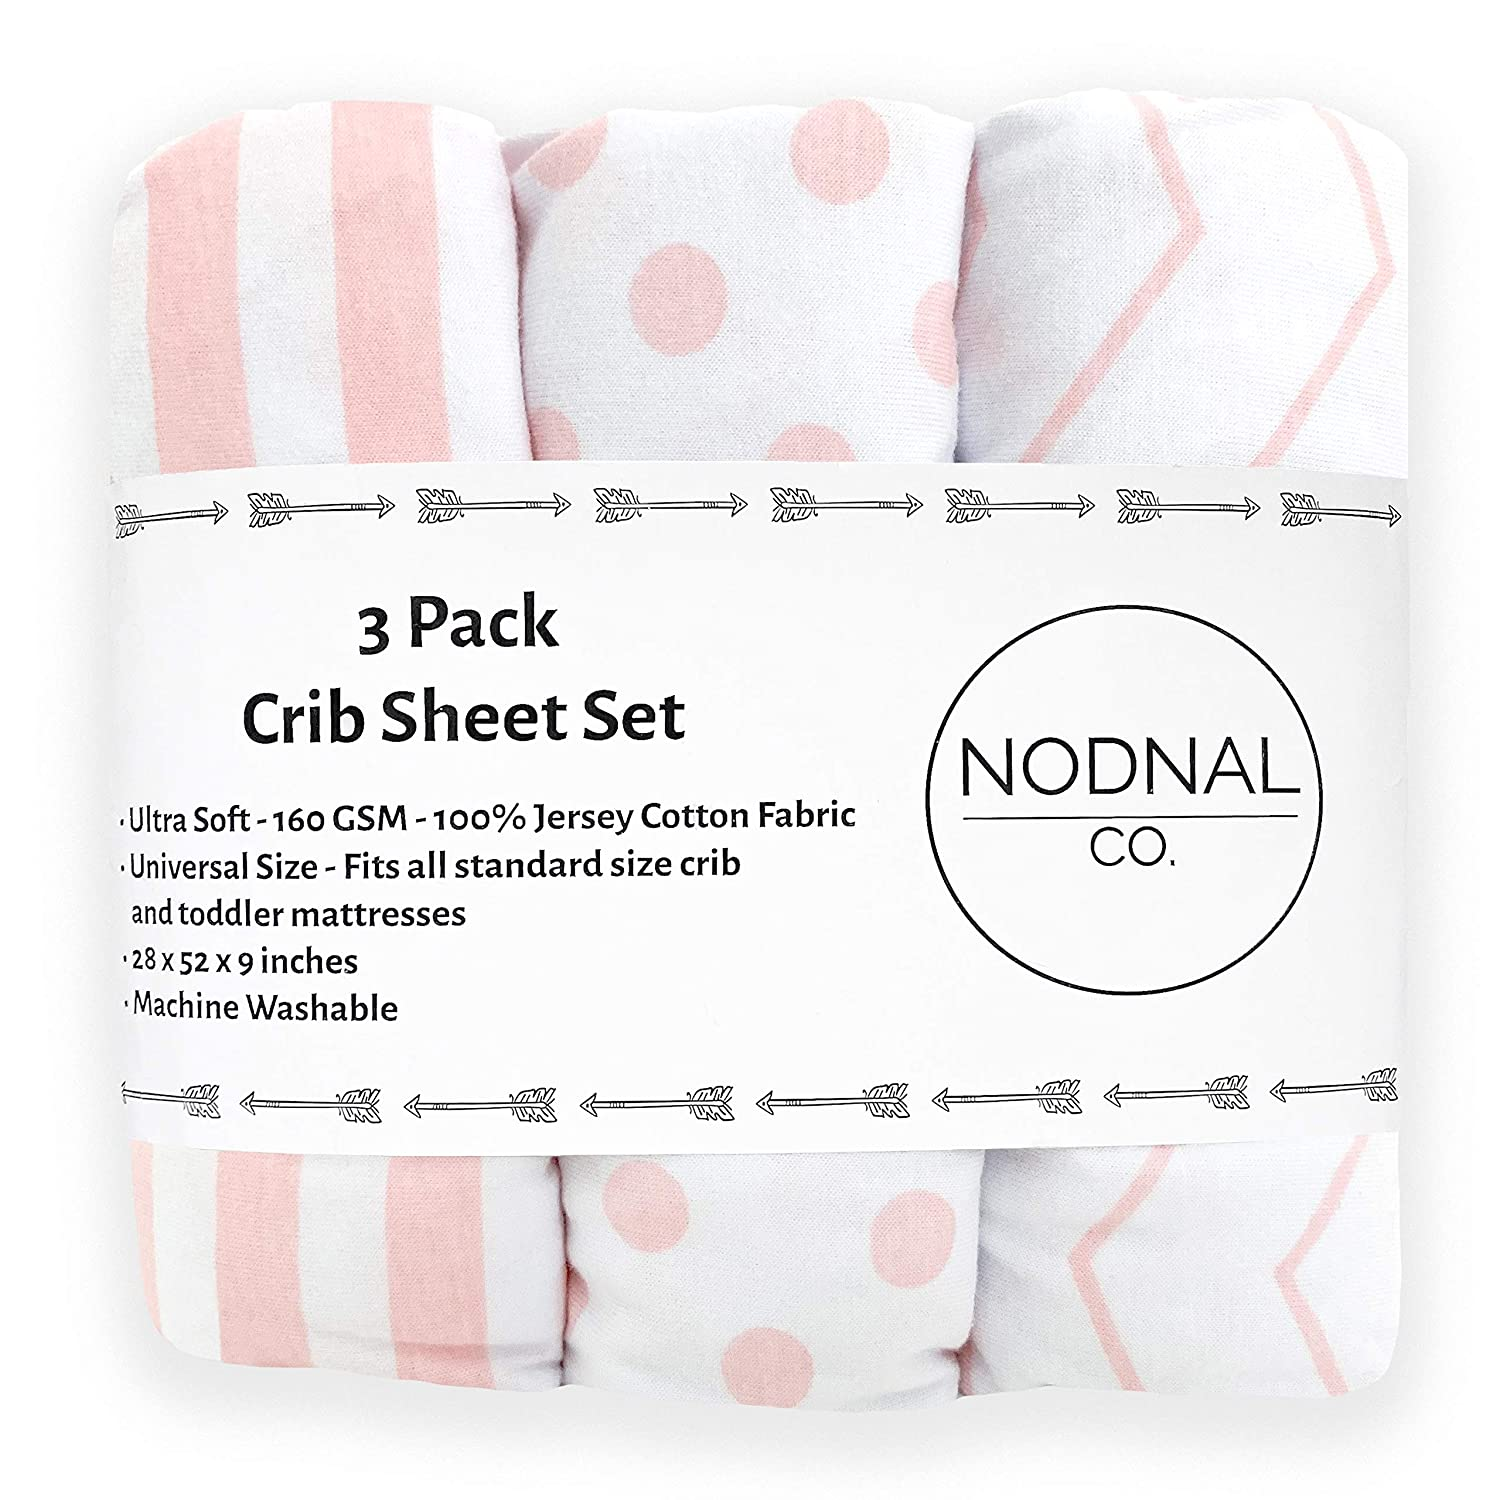 NODNAL CO. Pink Fitted Crib Sheets Set 3 Pack Standard Baby or Toddler Mattress Jersey Knit Cotton Girl Nursery Bedding - Chevron, Polka Dot, Stripe 160 GSM Full Size Crib Sheet